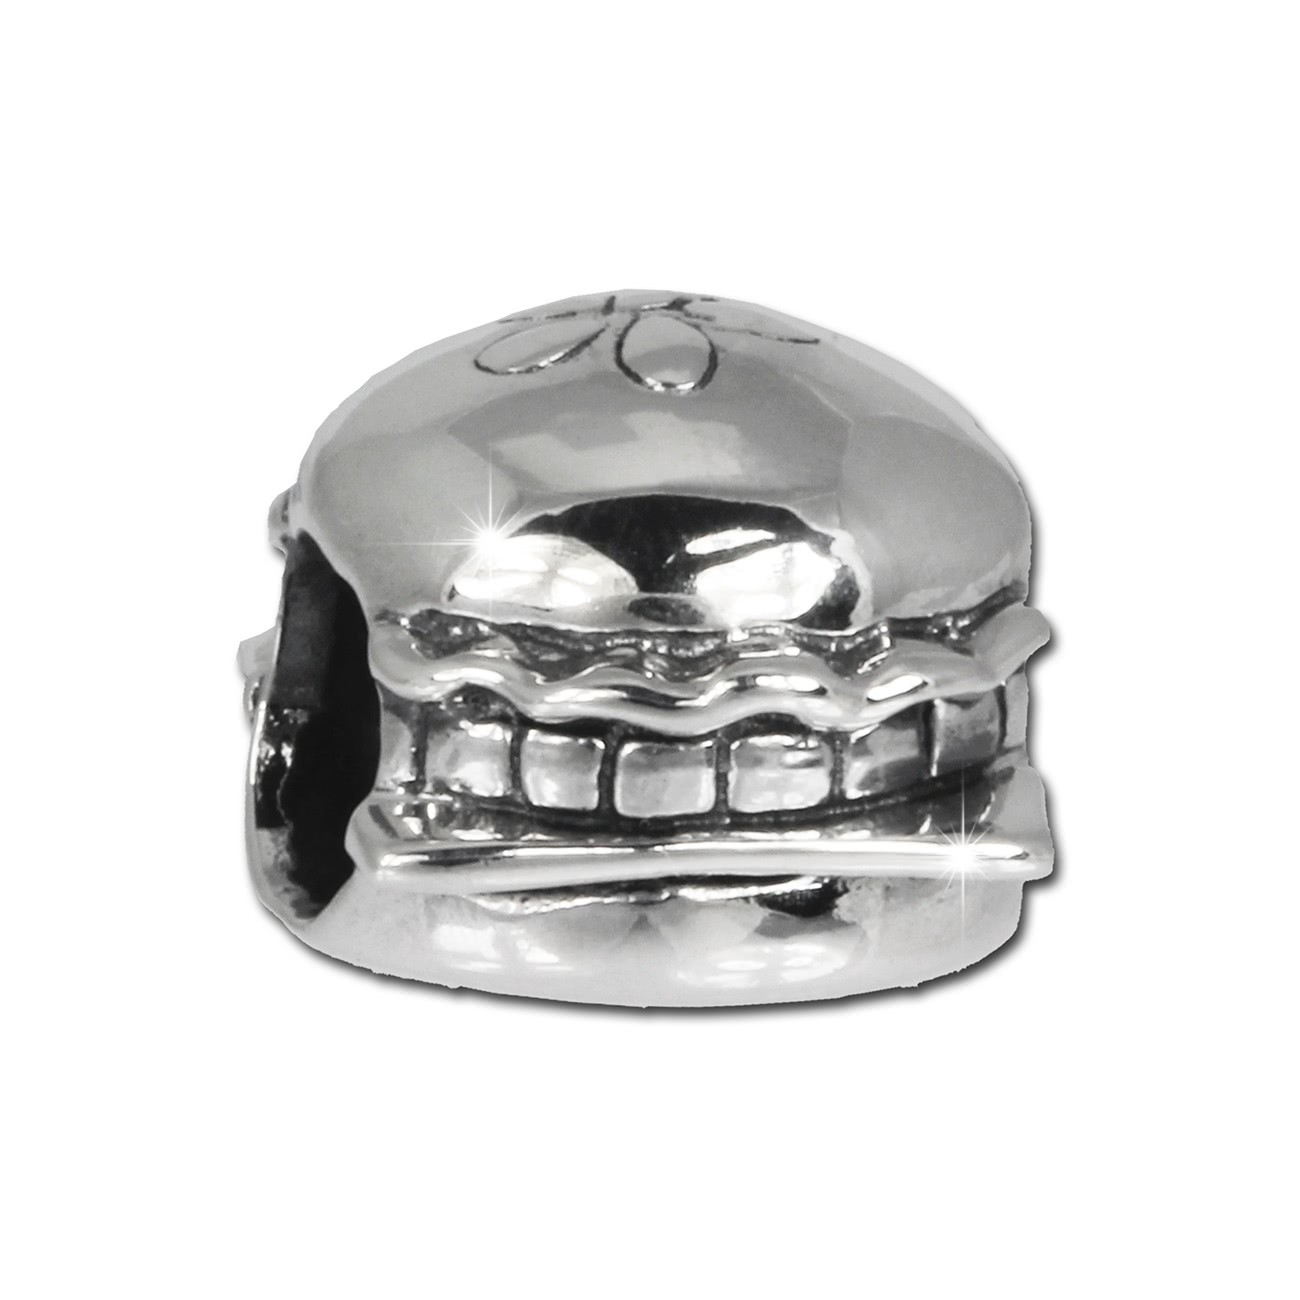 IMPPAC Bead Hamburger 925 Sterling Silber Armband Beads SBB365